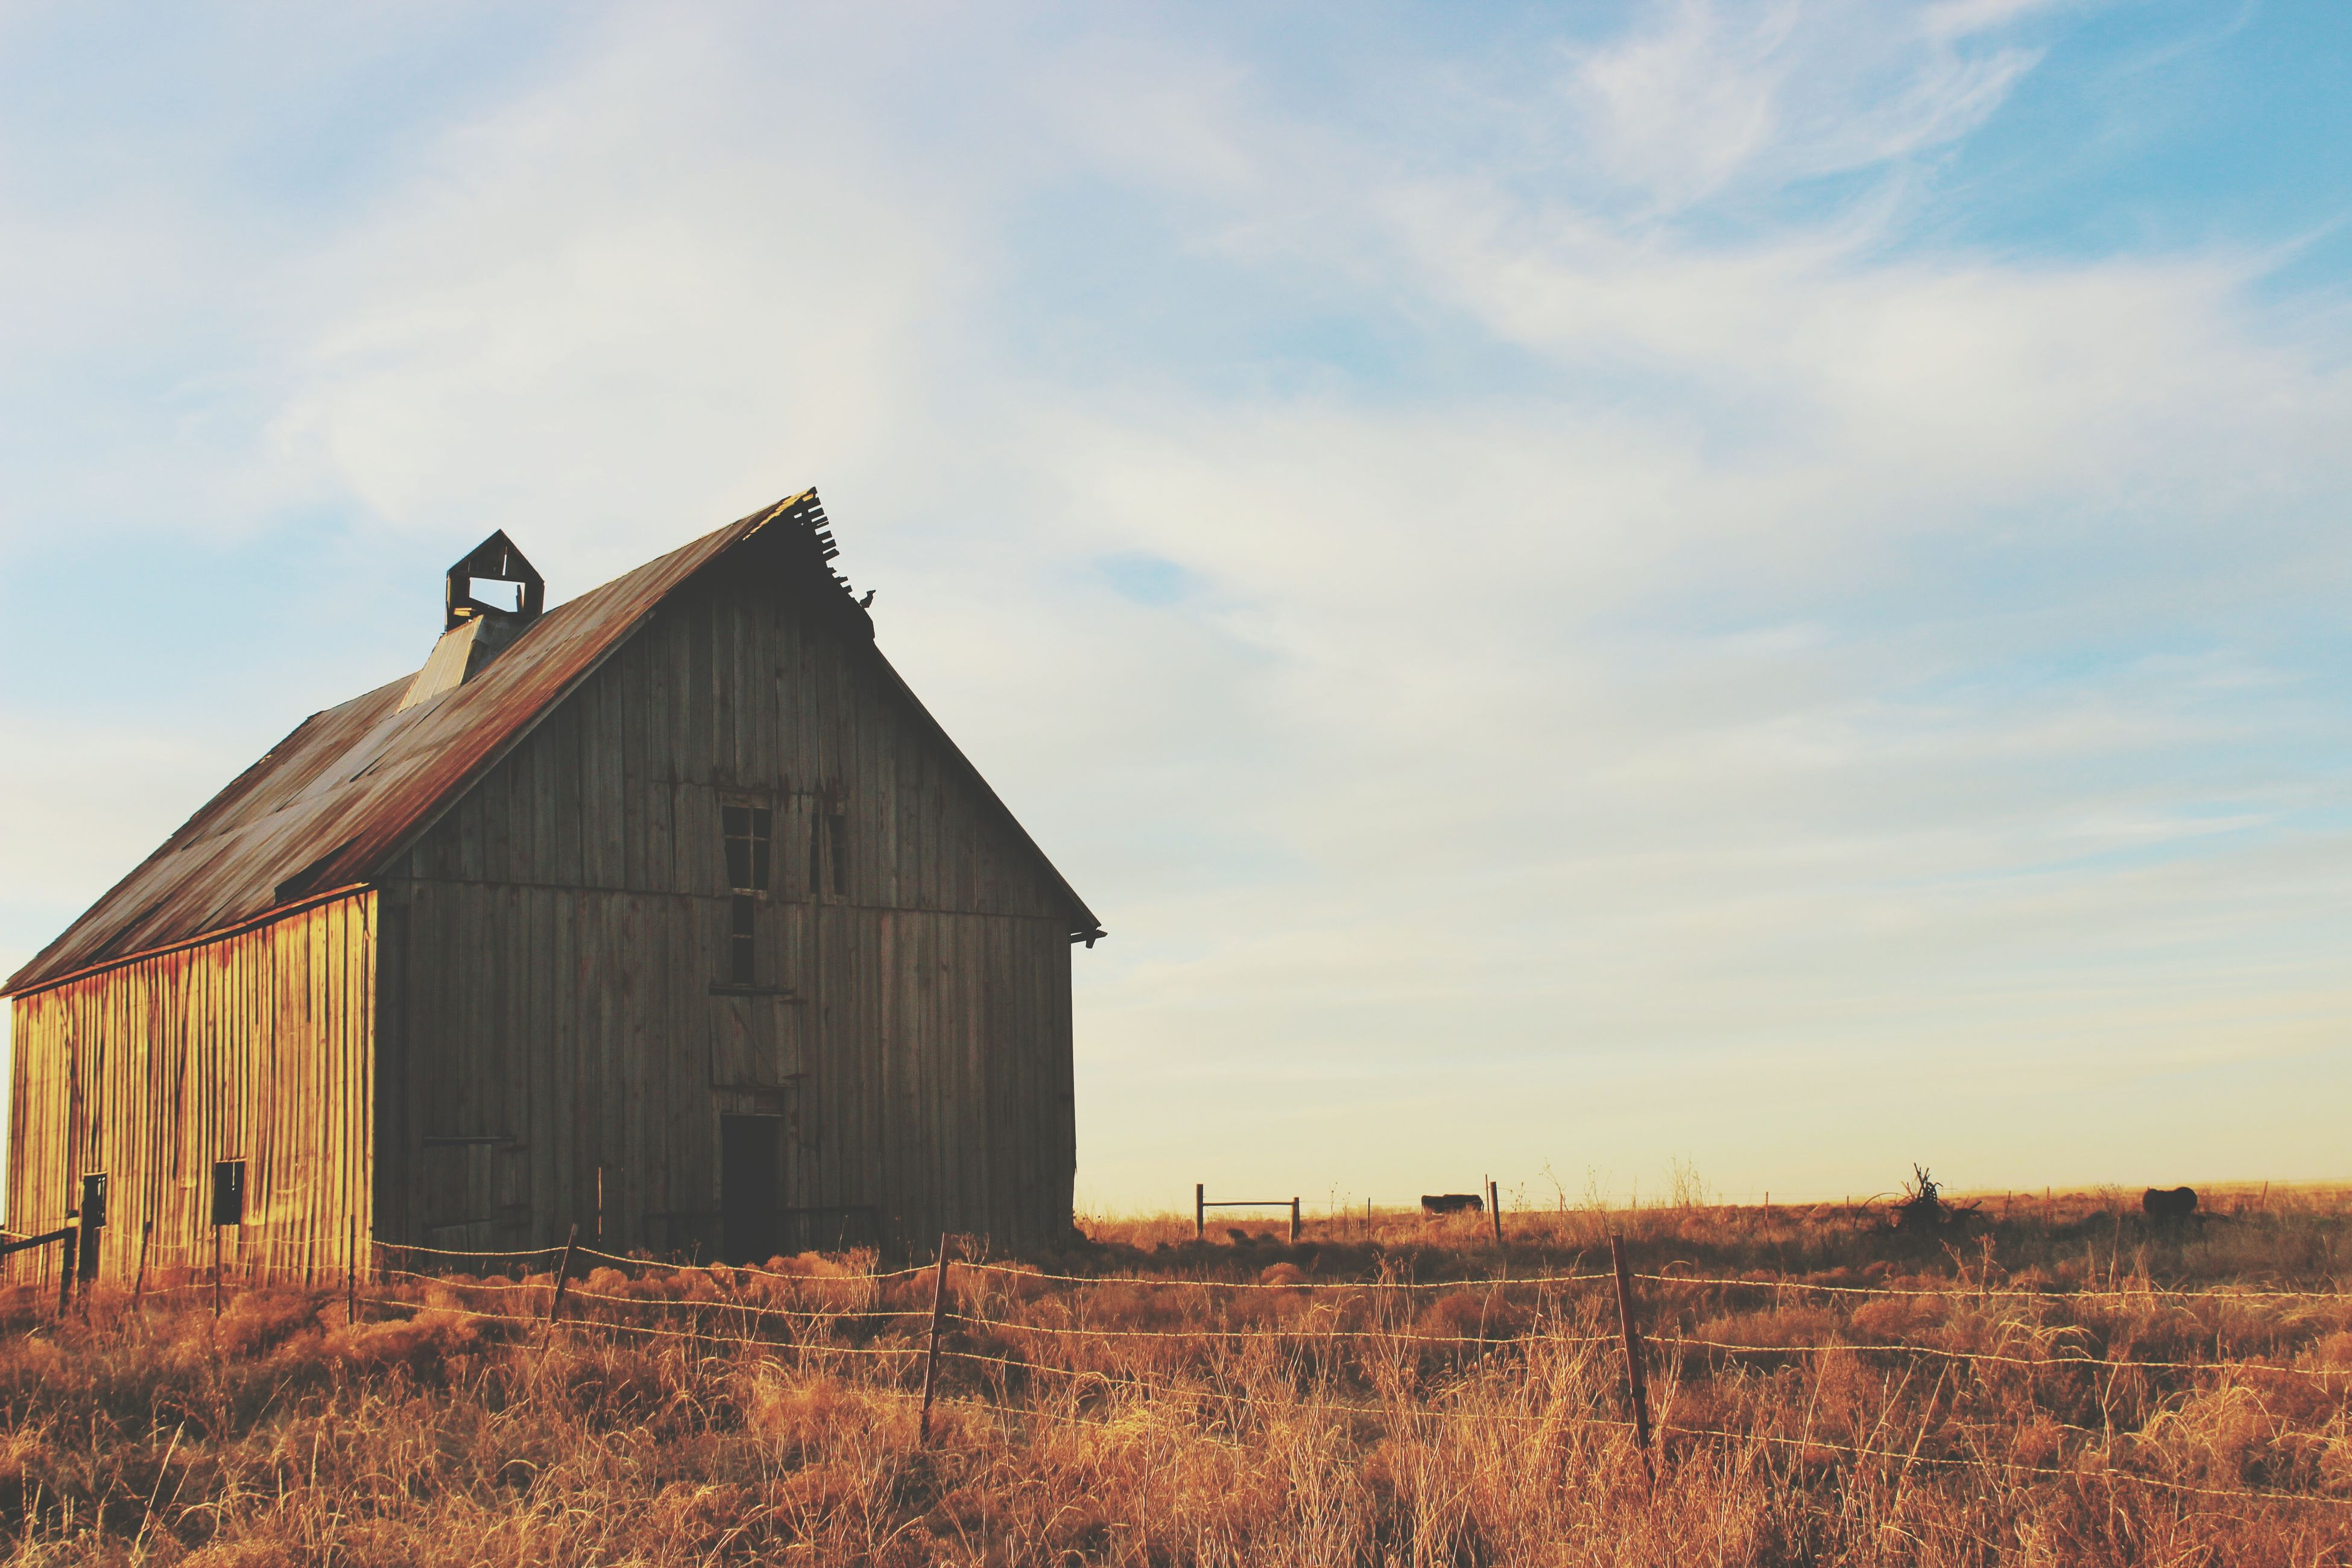 architecture, building exterior, built structure, sky, house, cloud - sky, residential structure, cloud, low angle view, field, outdoors, rural scene, no people, day, residential building, cloudy, barn, nature, roof, exterior